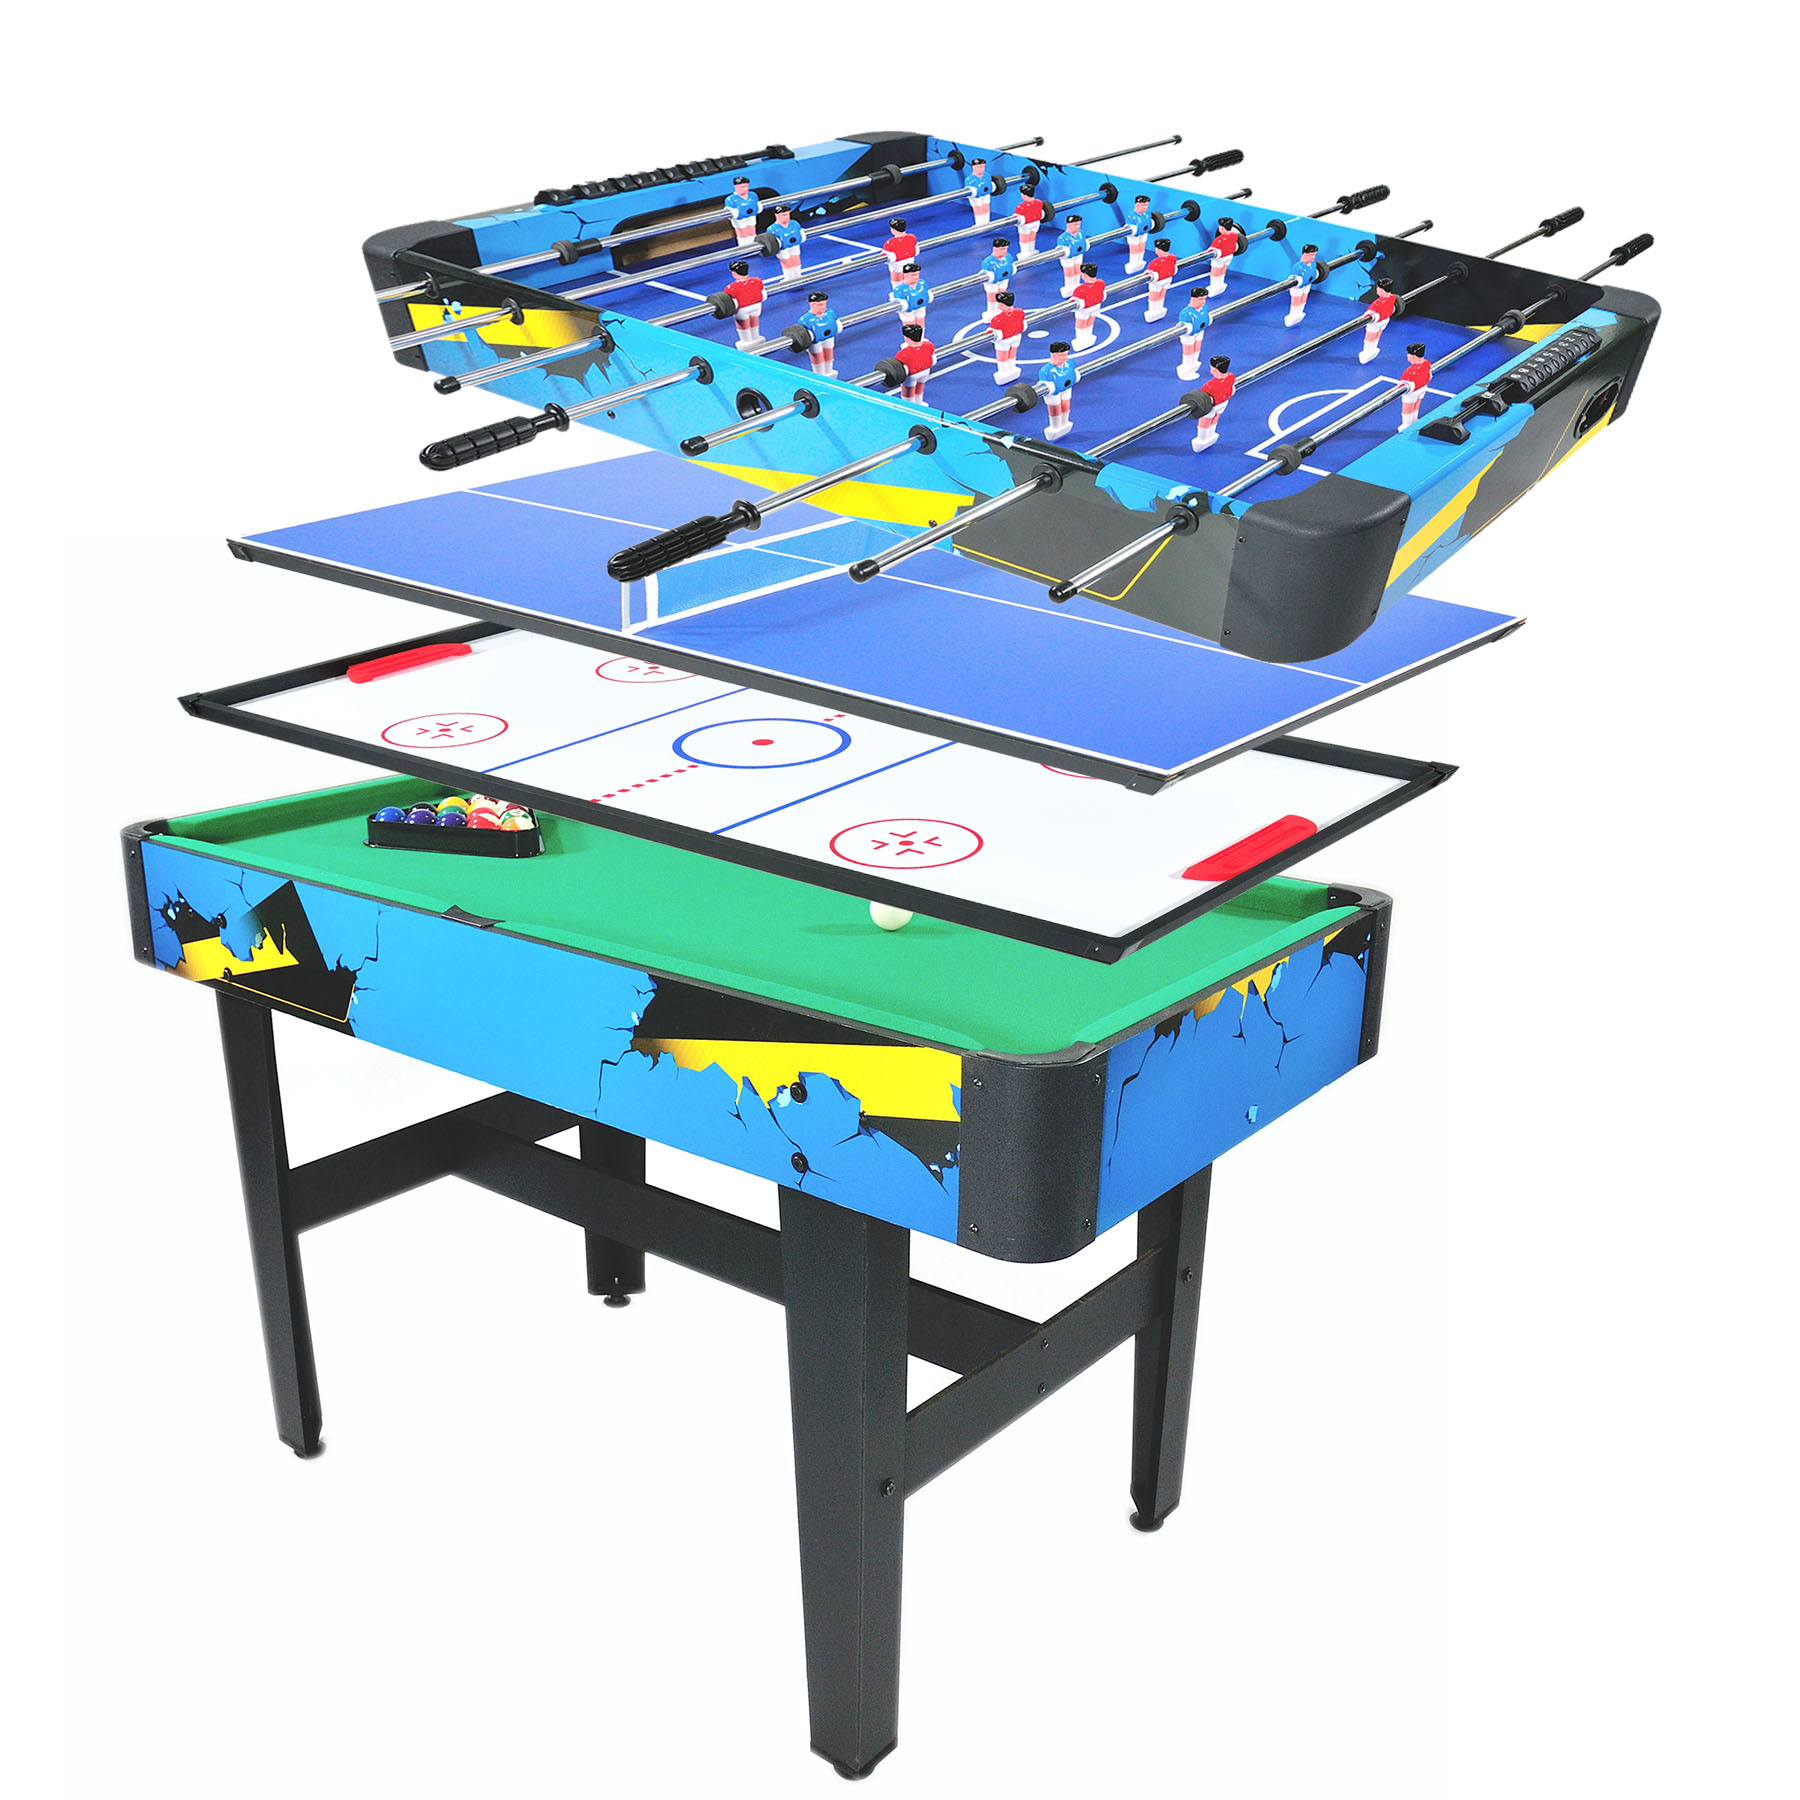 Ordinaire 48 Inch 4 In 1 Combo Game Table, 4 Games With Hockey, Foosball,